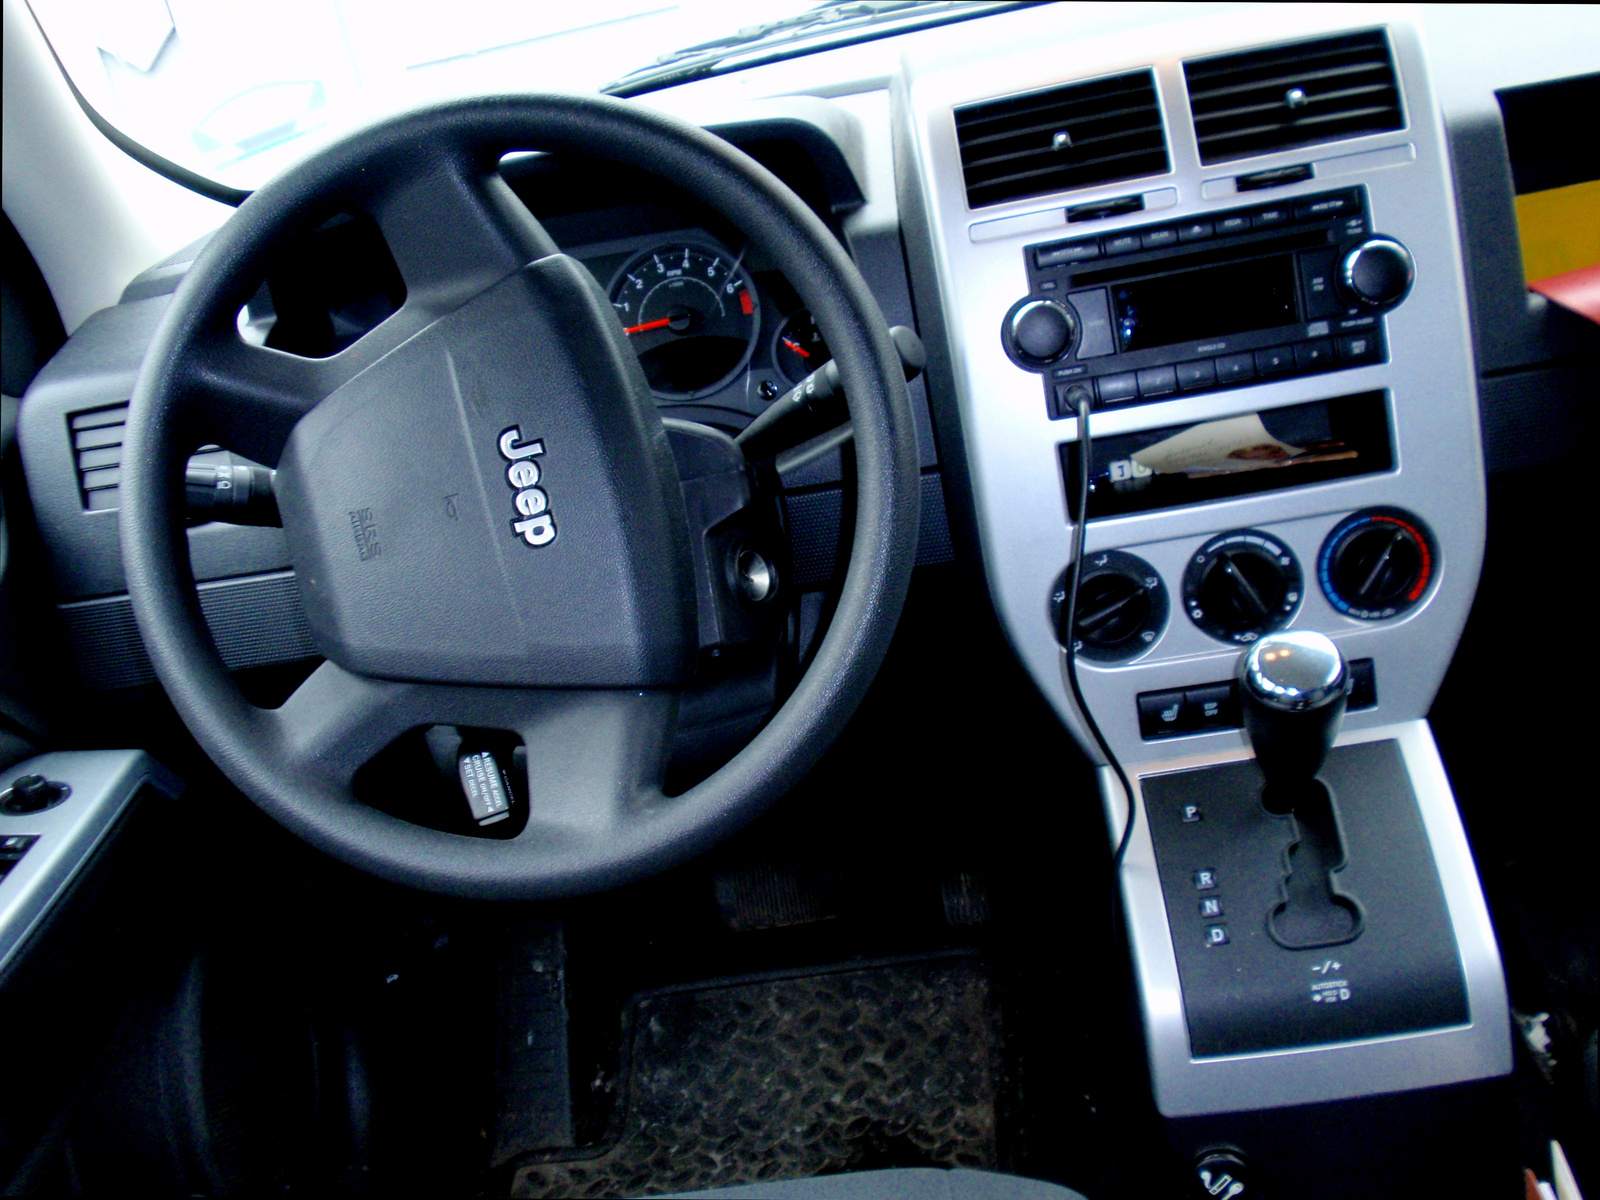 Jeep Patriot 2008 Interior